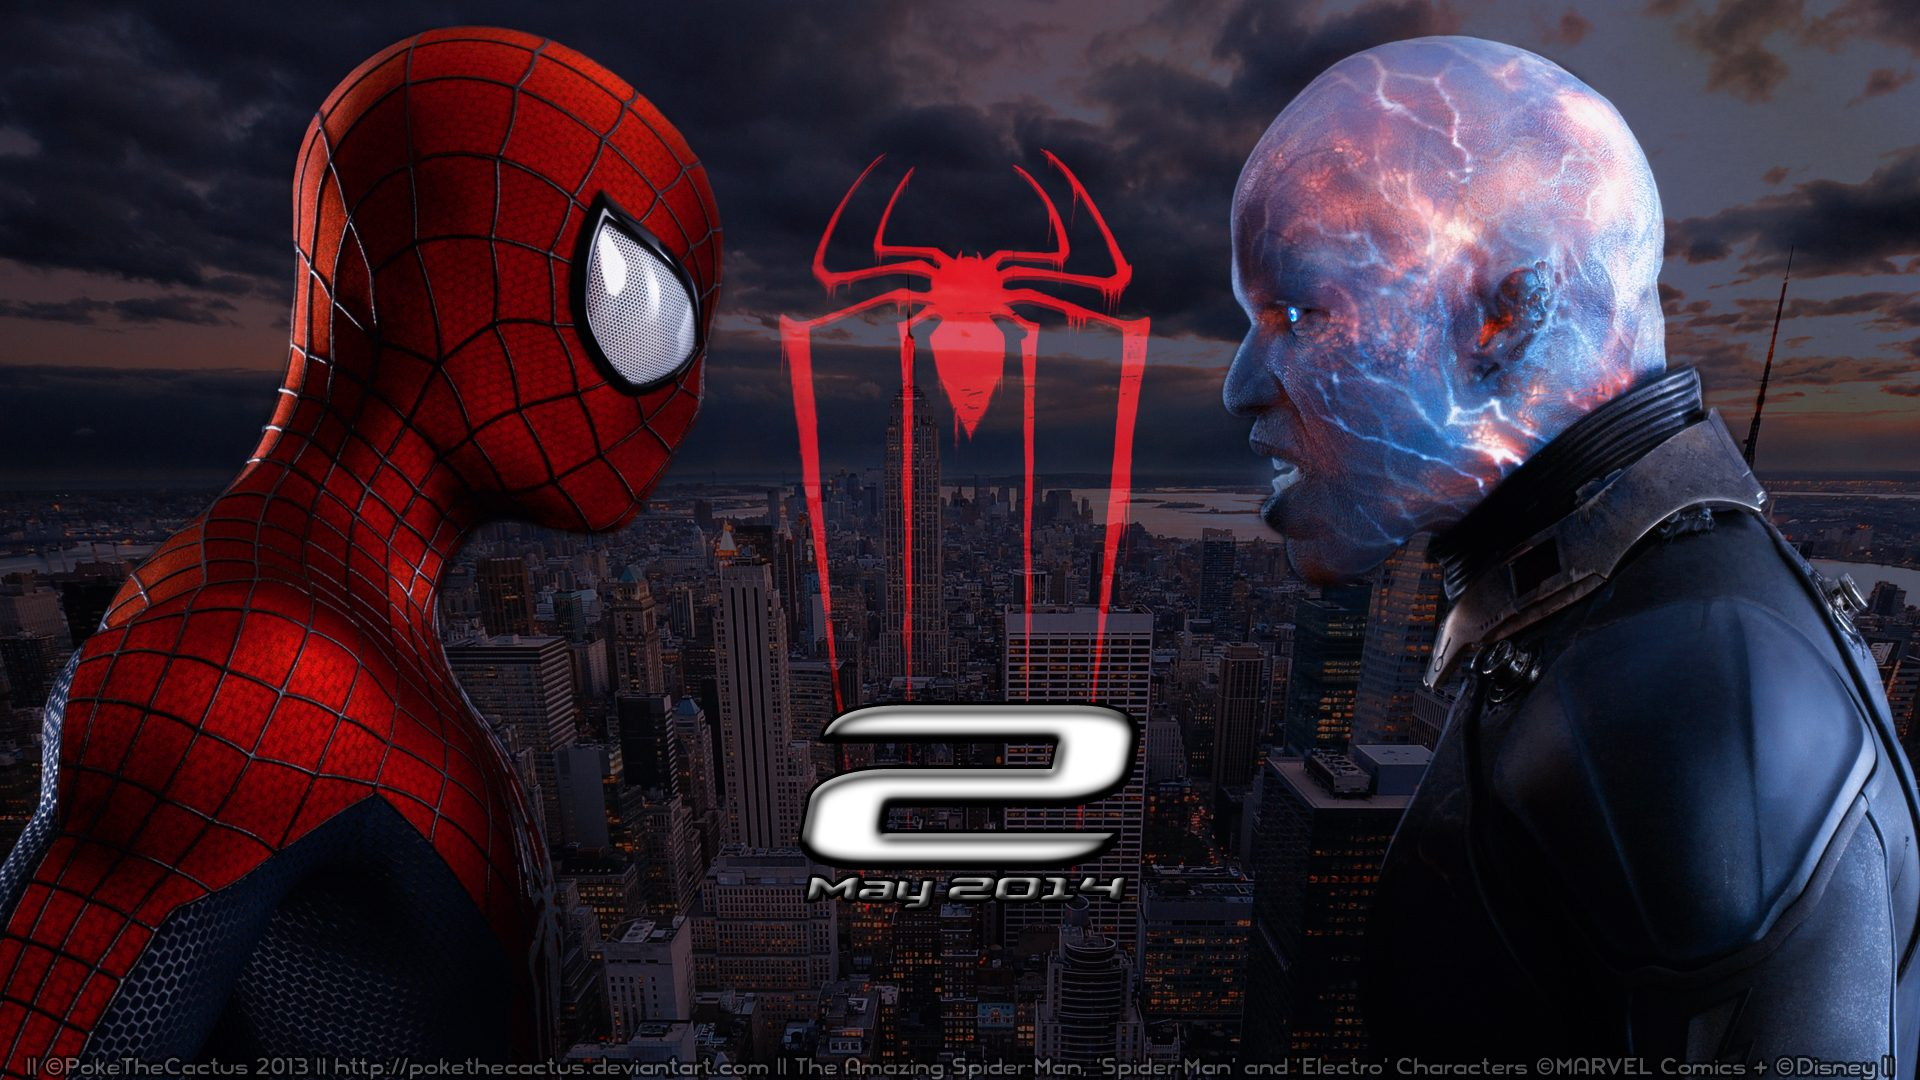 2014 spiderman movie